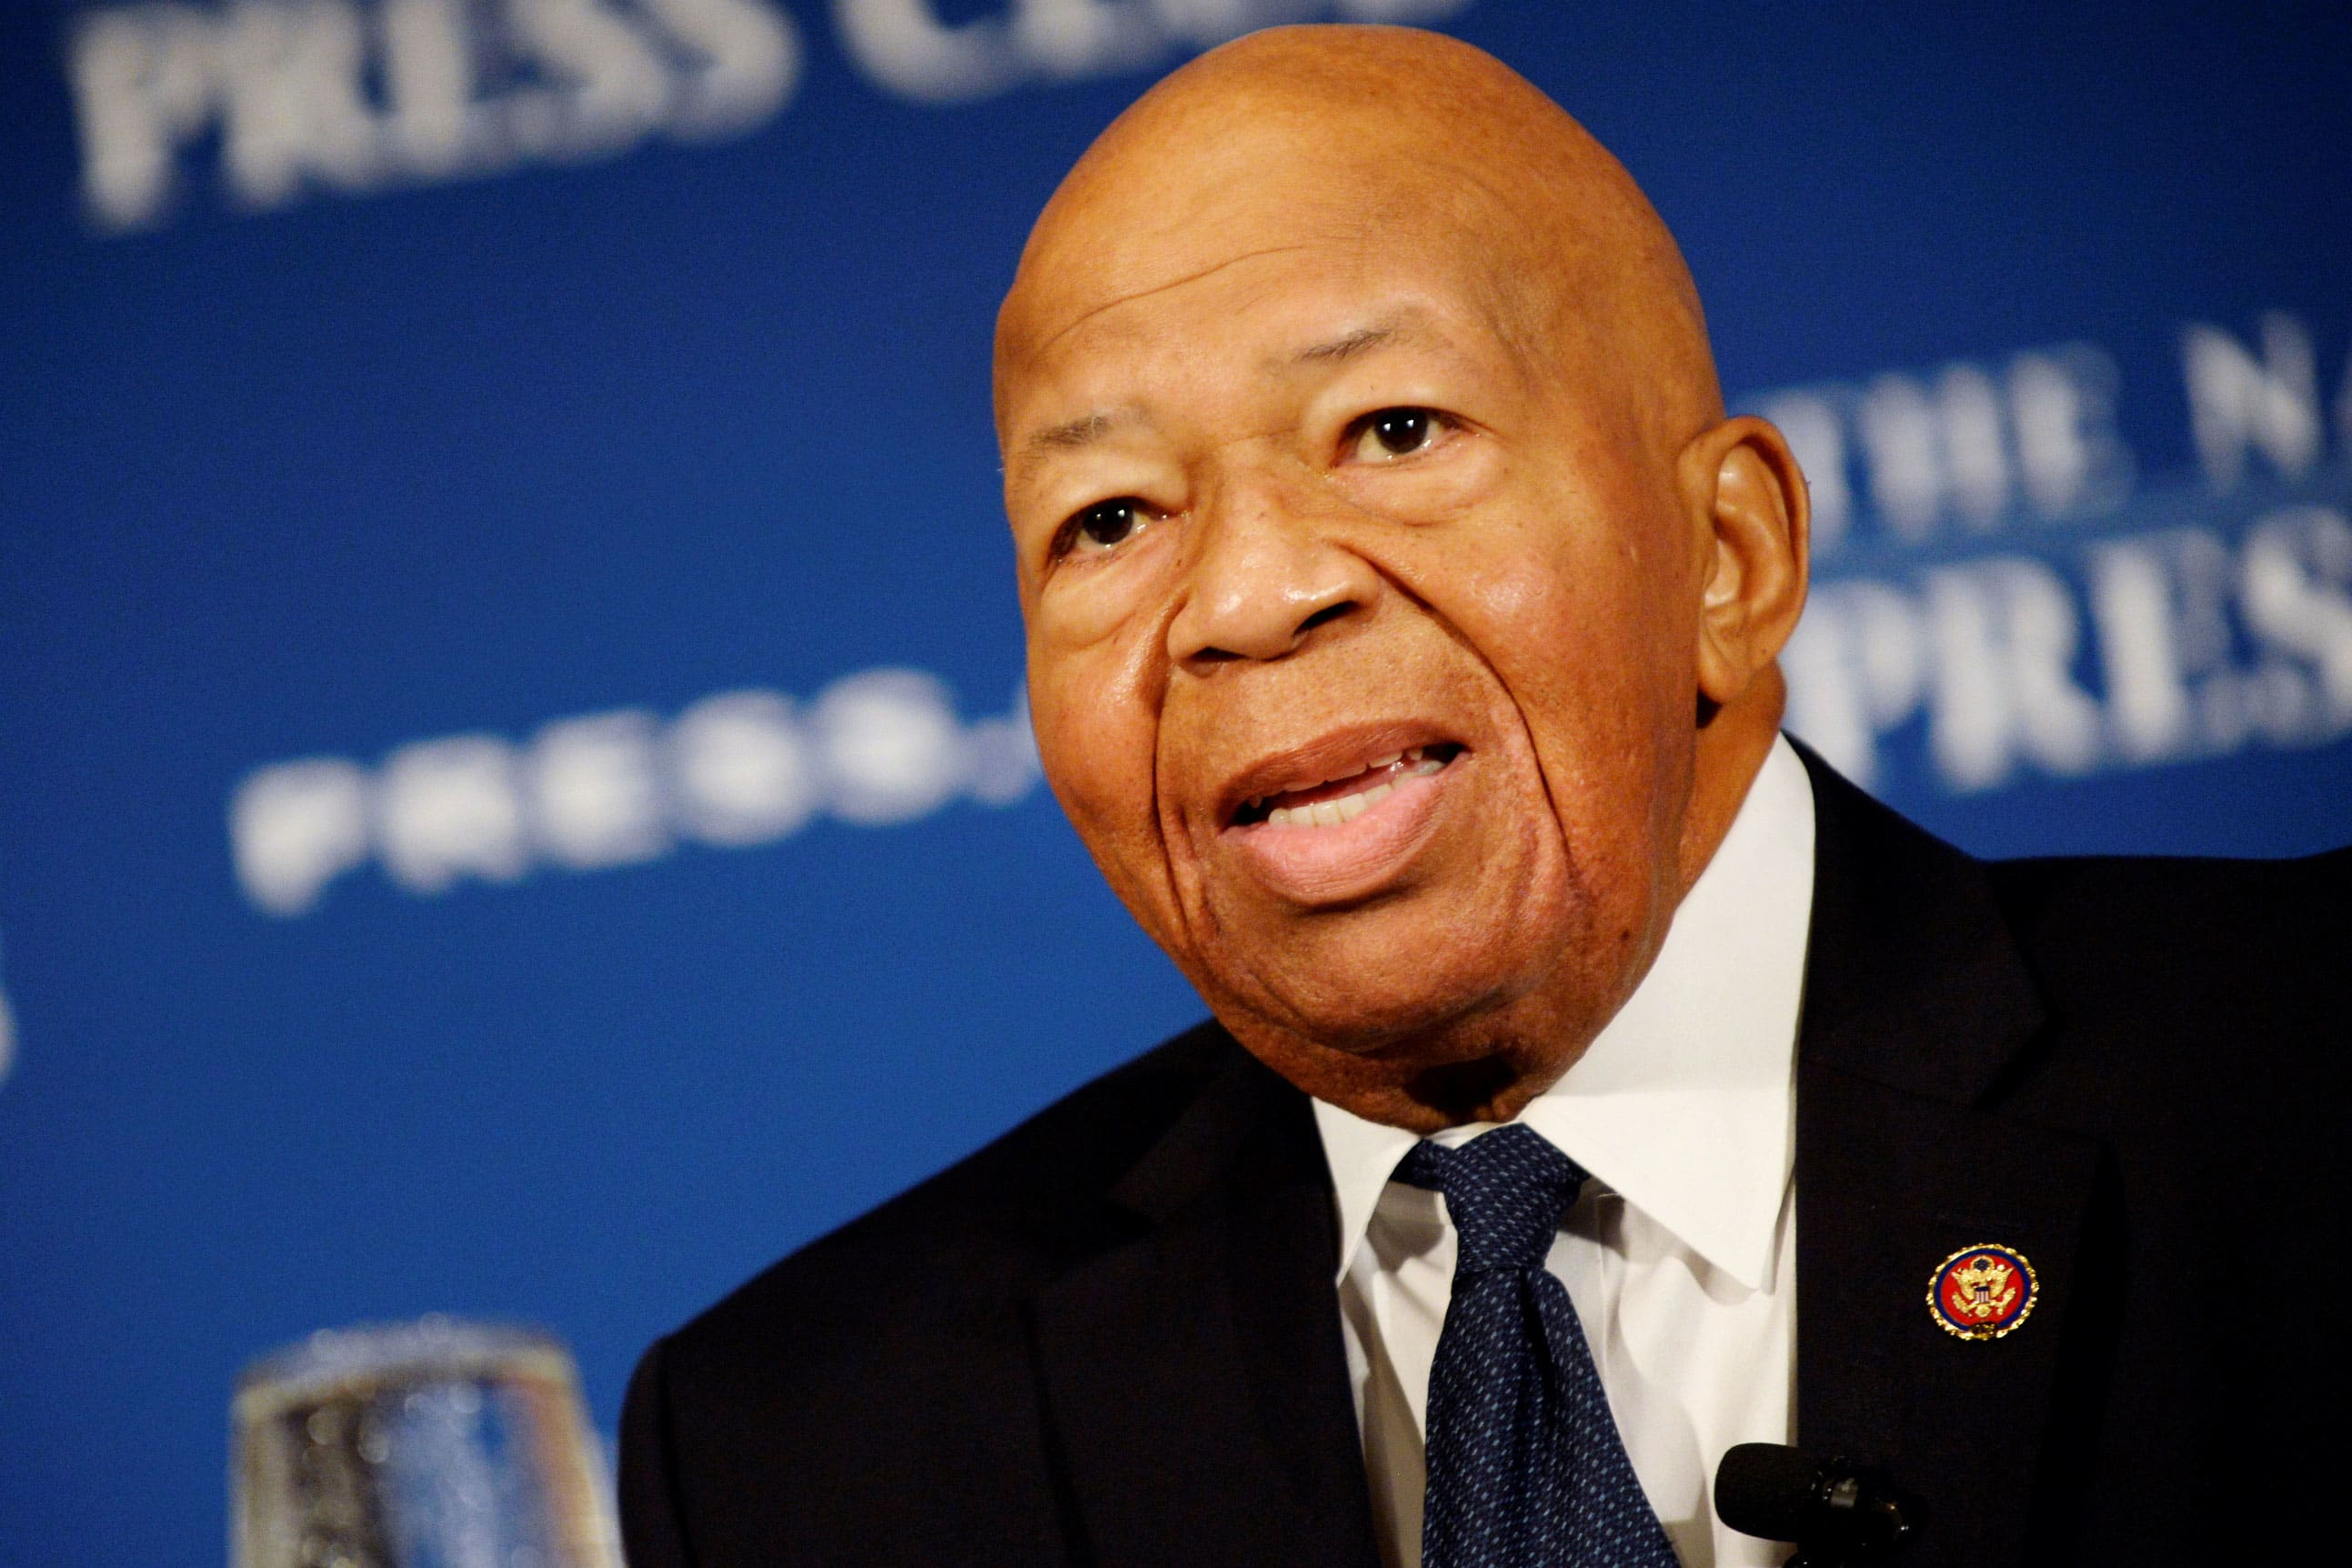 Democratic Congressman Elijah Cummings, chair of House Oversight and Reform Committee, has died